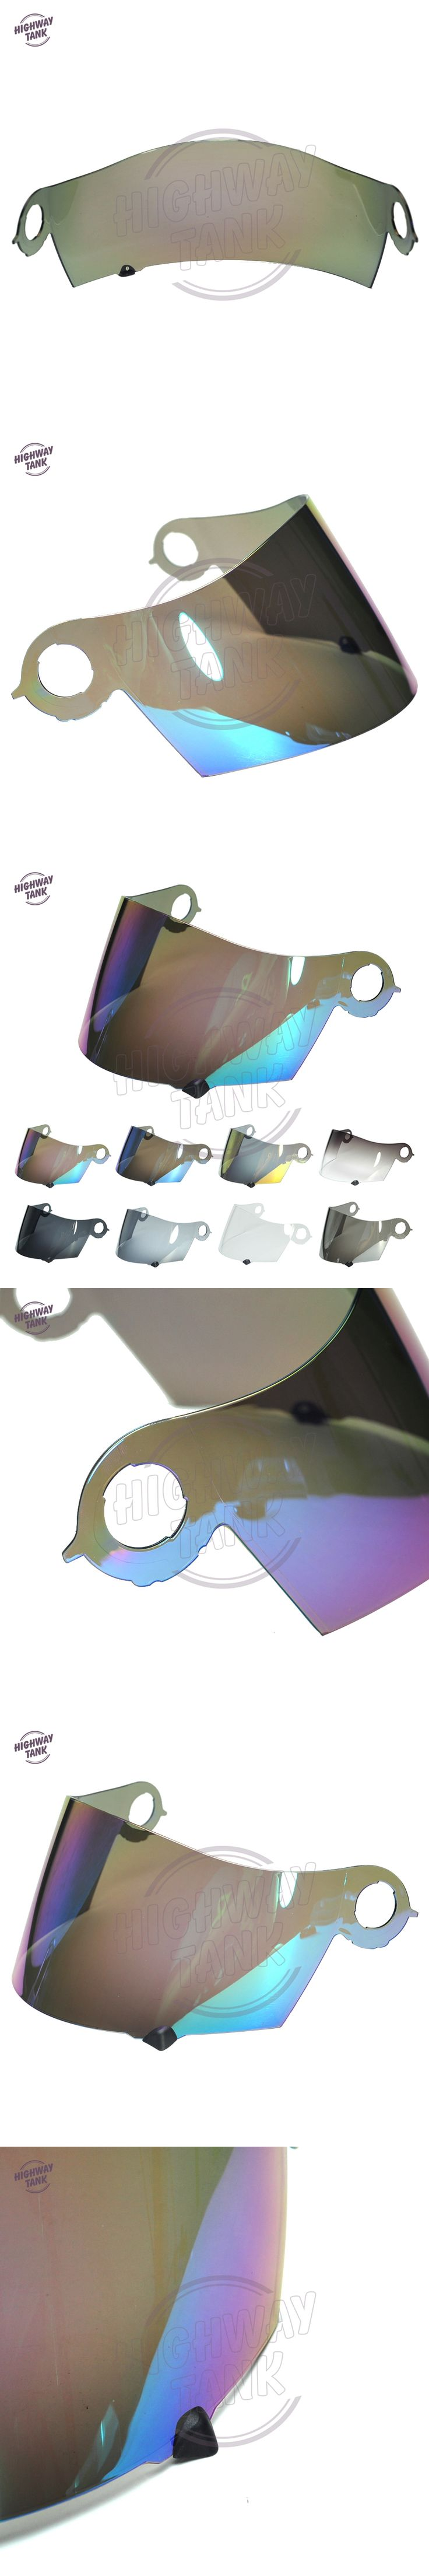 8 Colors Motorcycle Helmet Visor Full Face Shield Case for SUOMY Spec 1R Spec-1R Extreme Apex W/ Gold Iridium Blue Smoke Lens